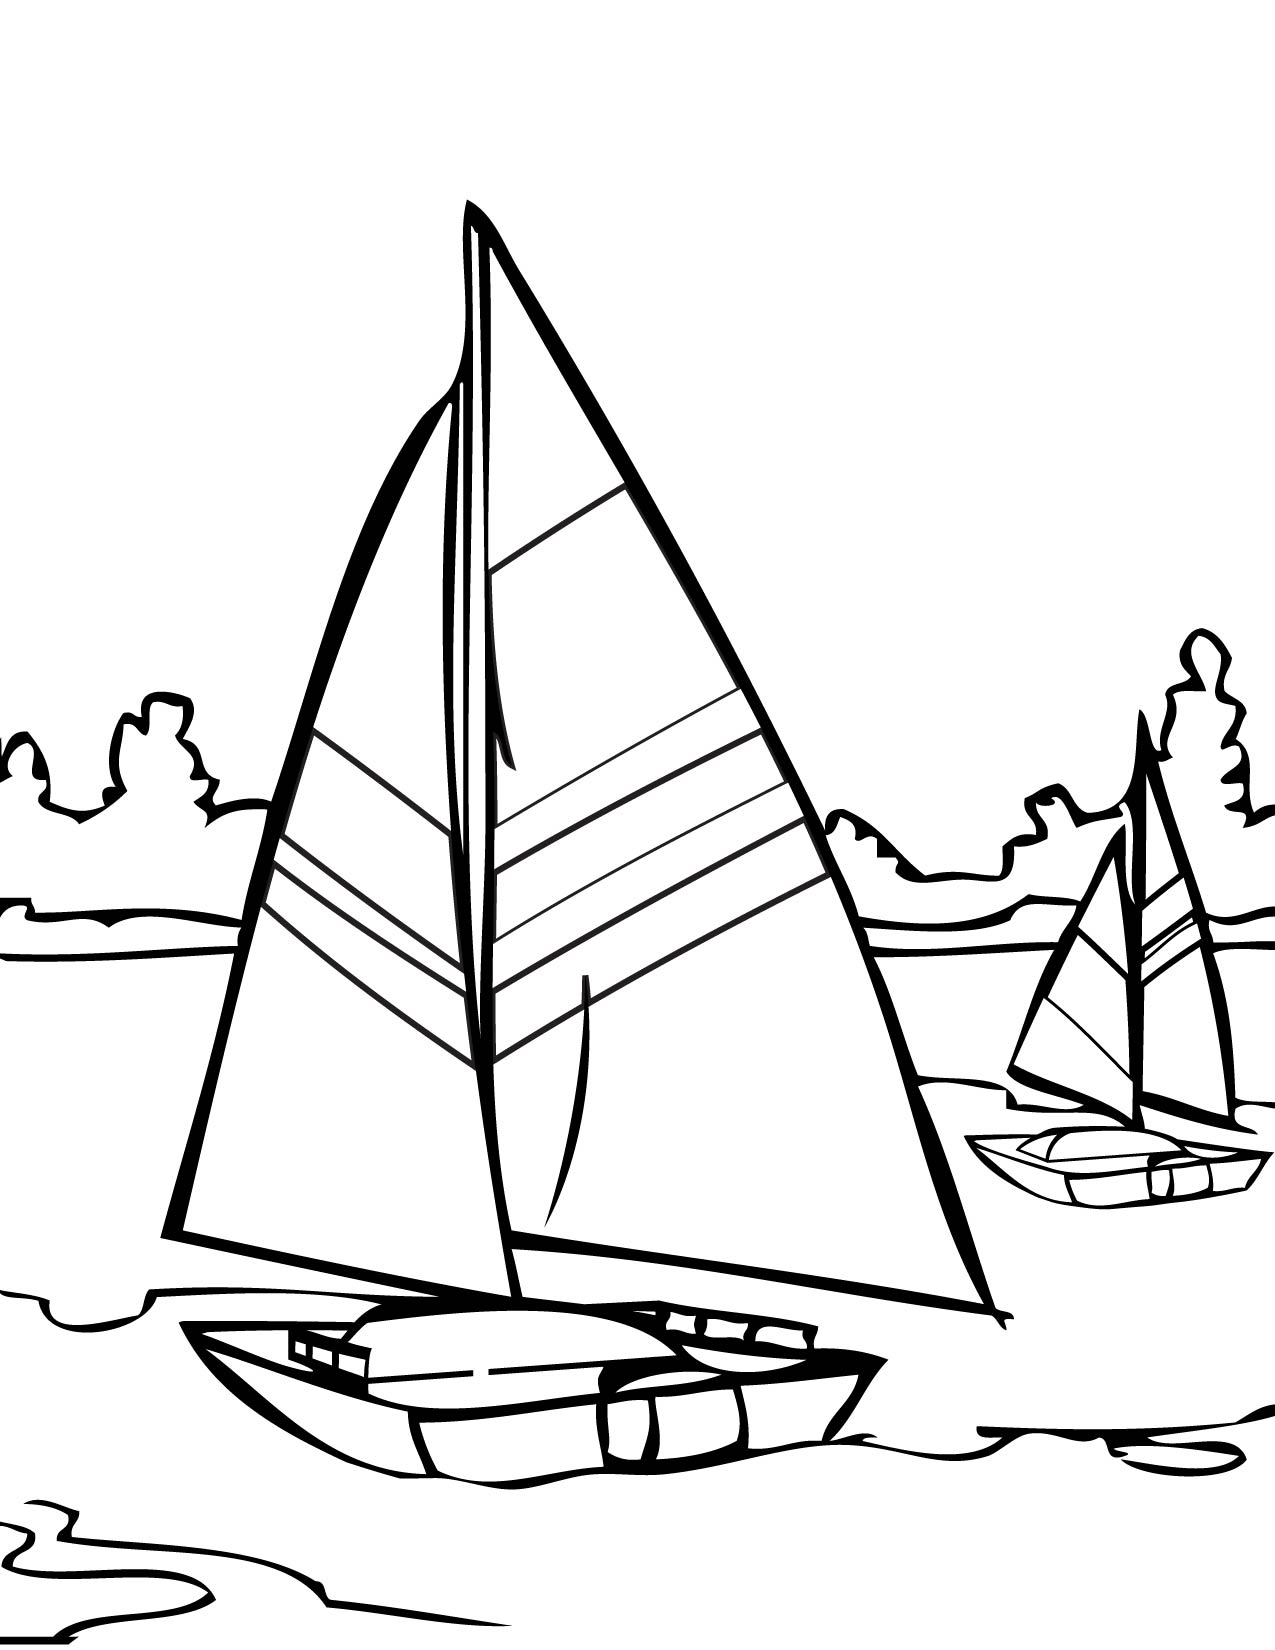 click the mountain and rocks coloring pages to view printable